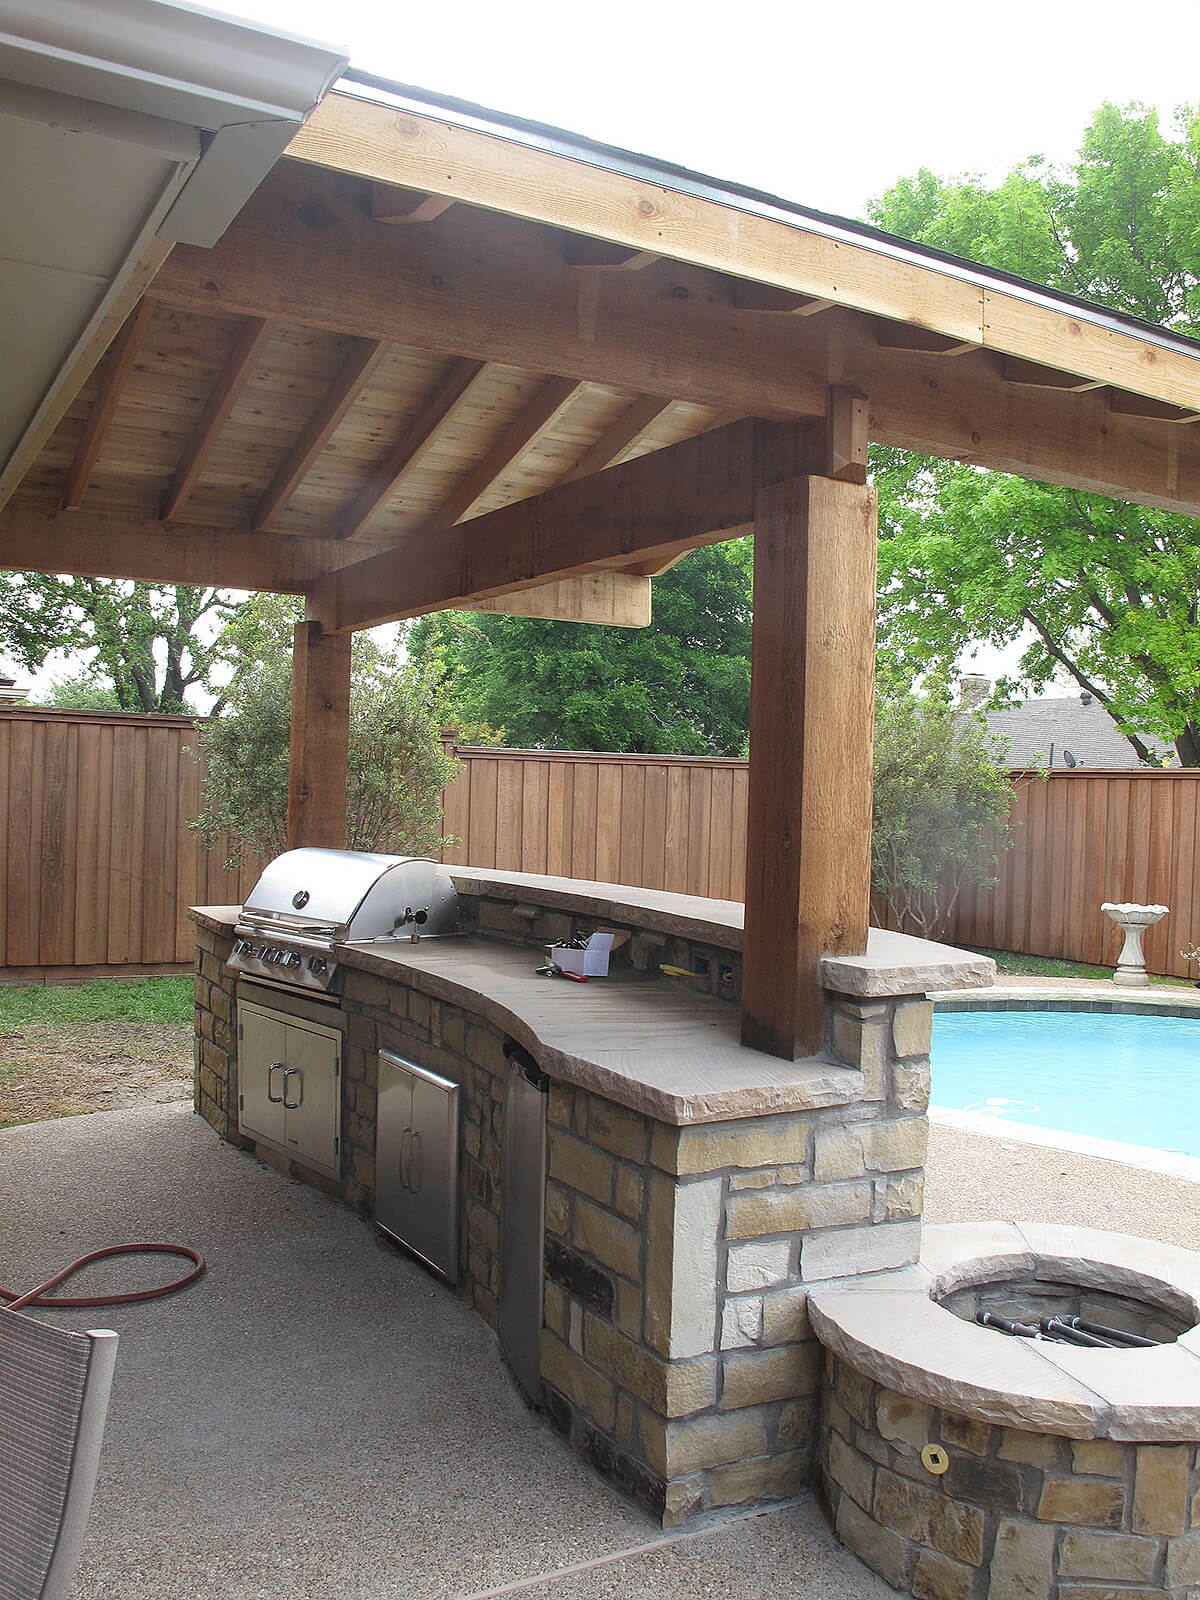 Stone Bar with Grill and Fire Pit